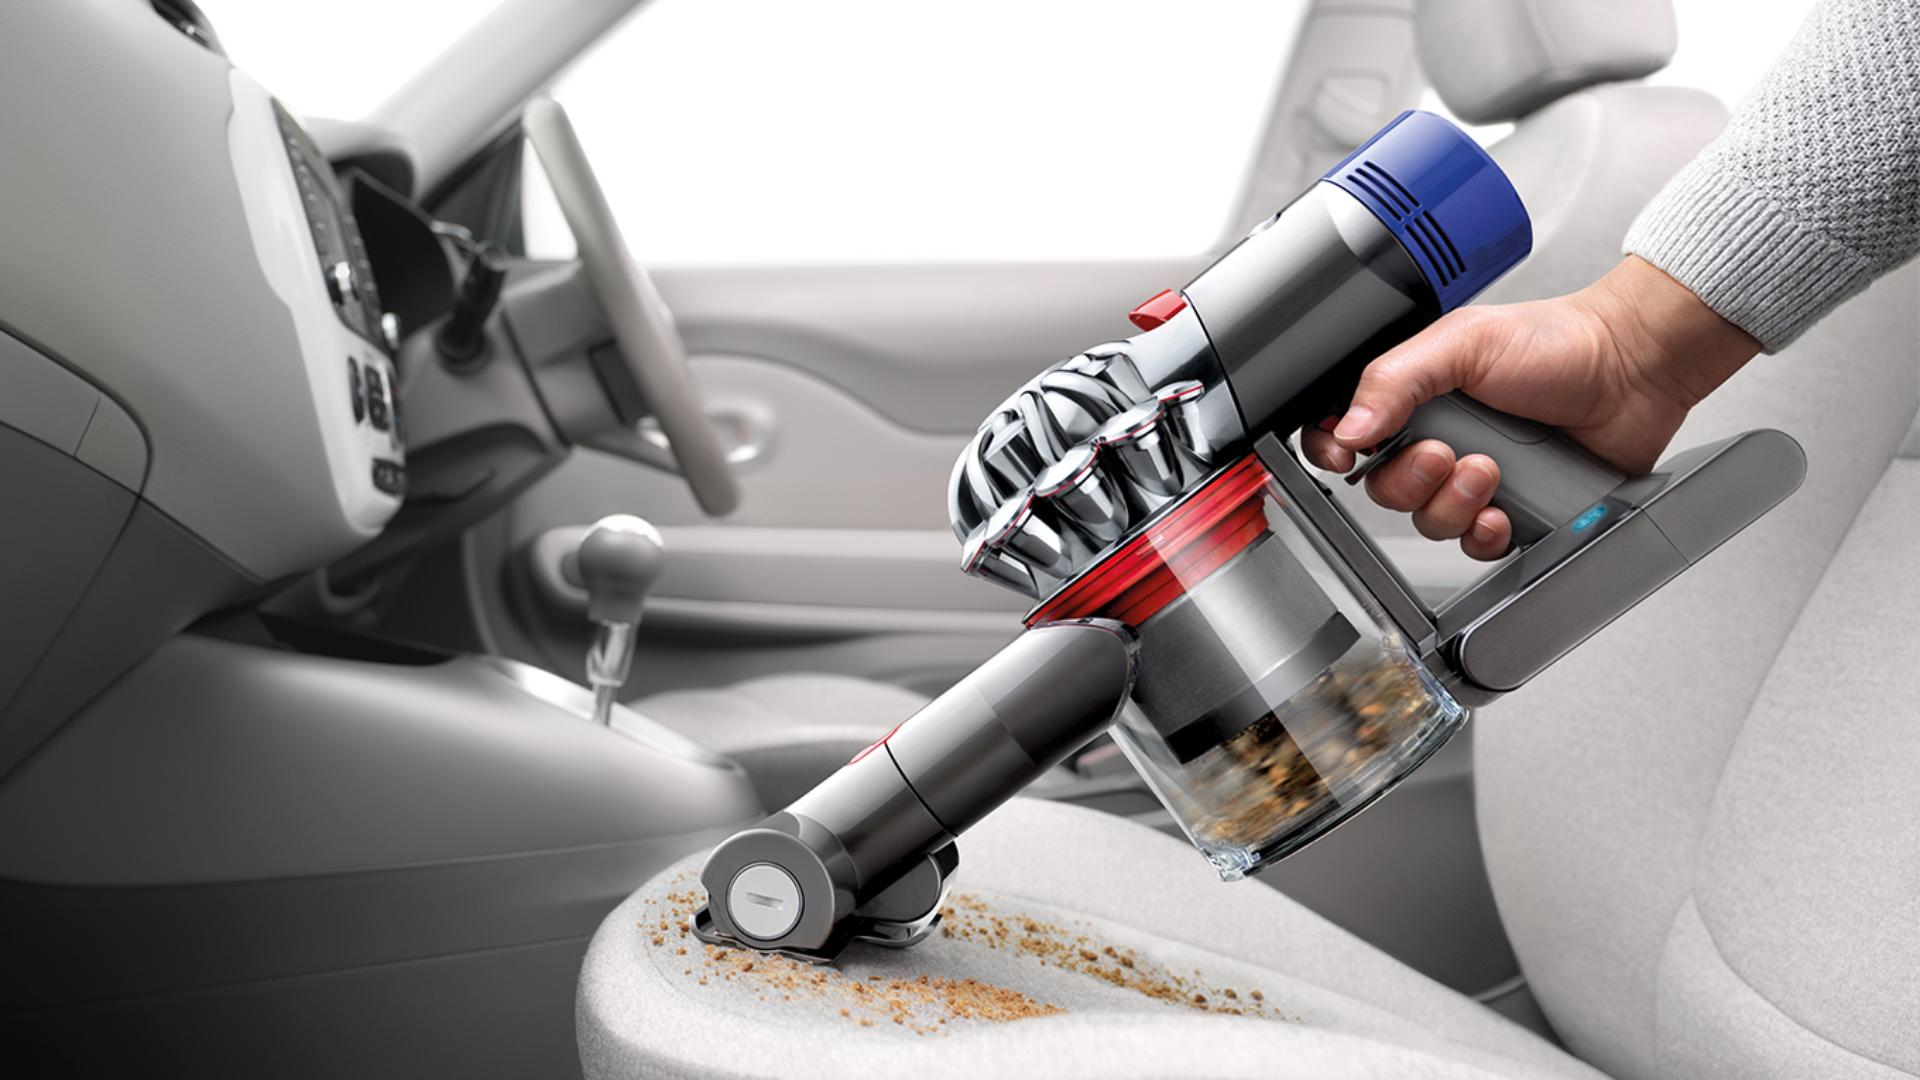 Dyson v8 cord-free vacuum cleaner being used as a handheld to clean car interior.